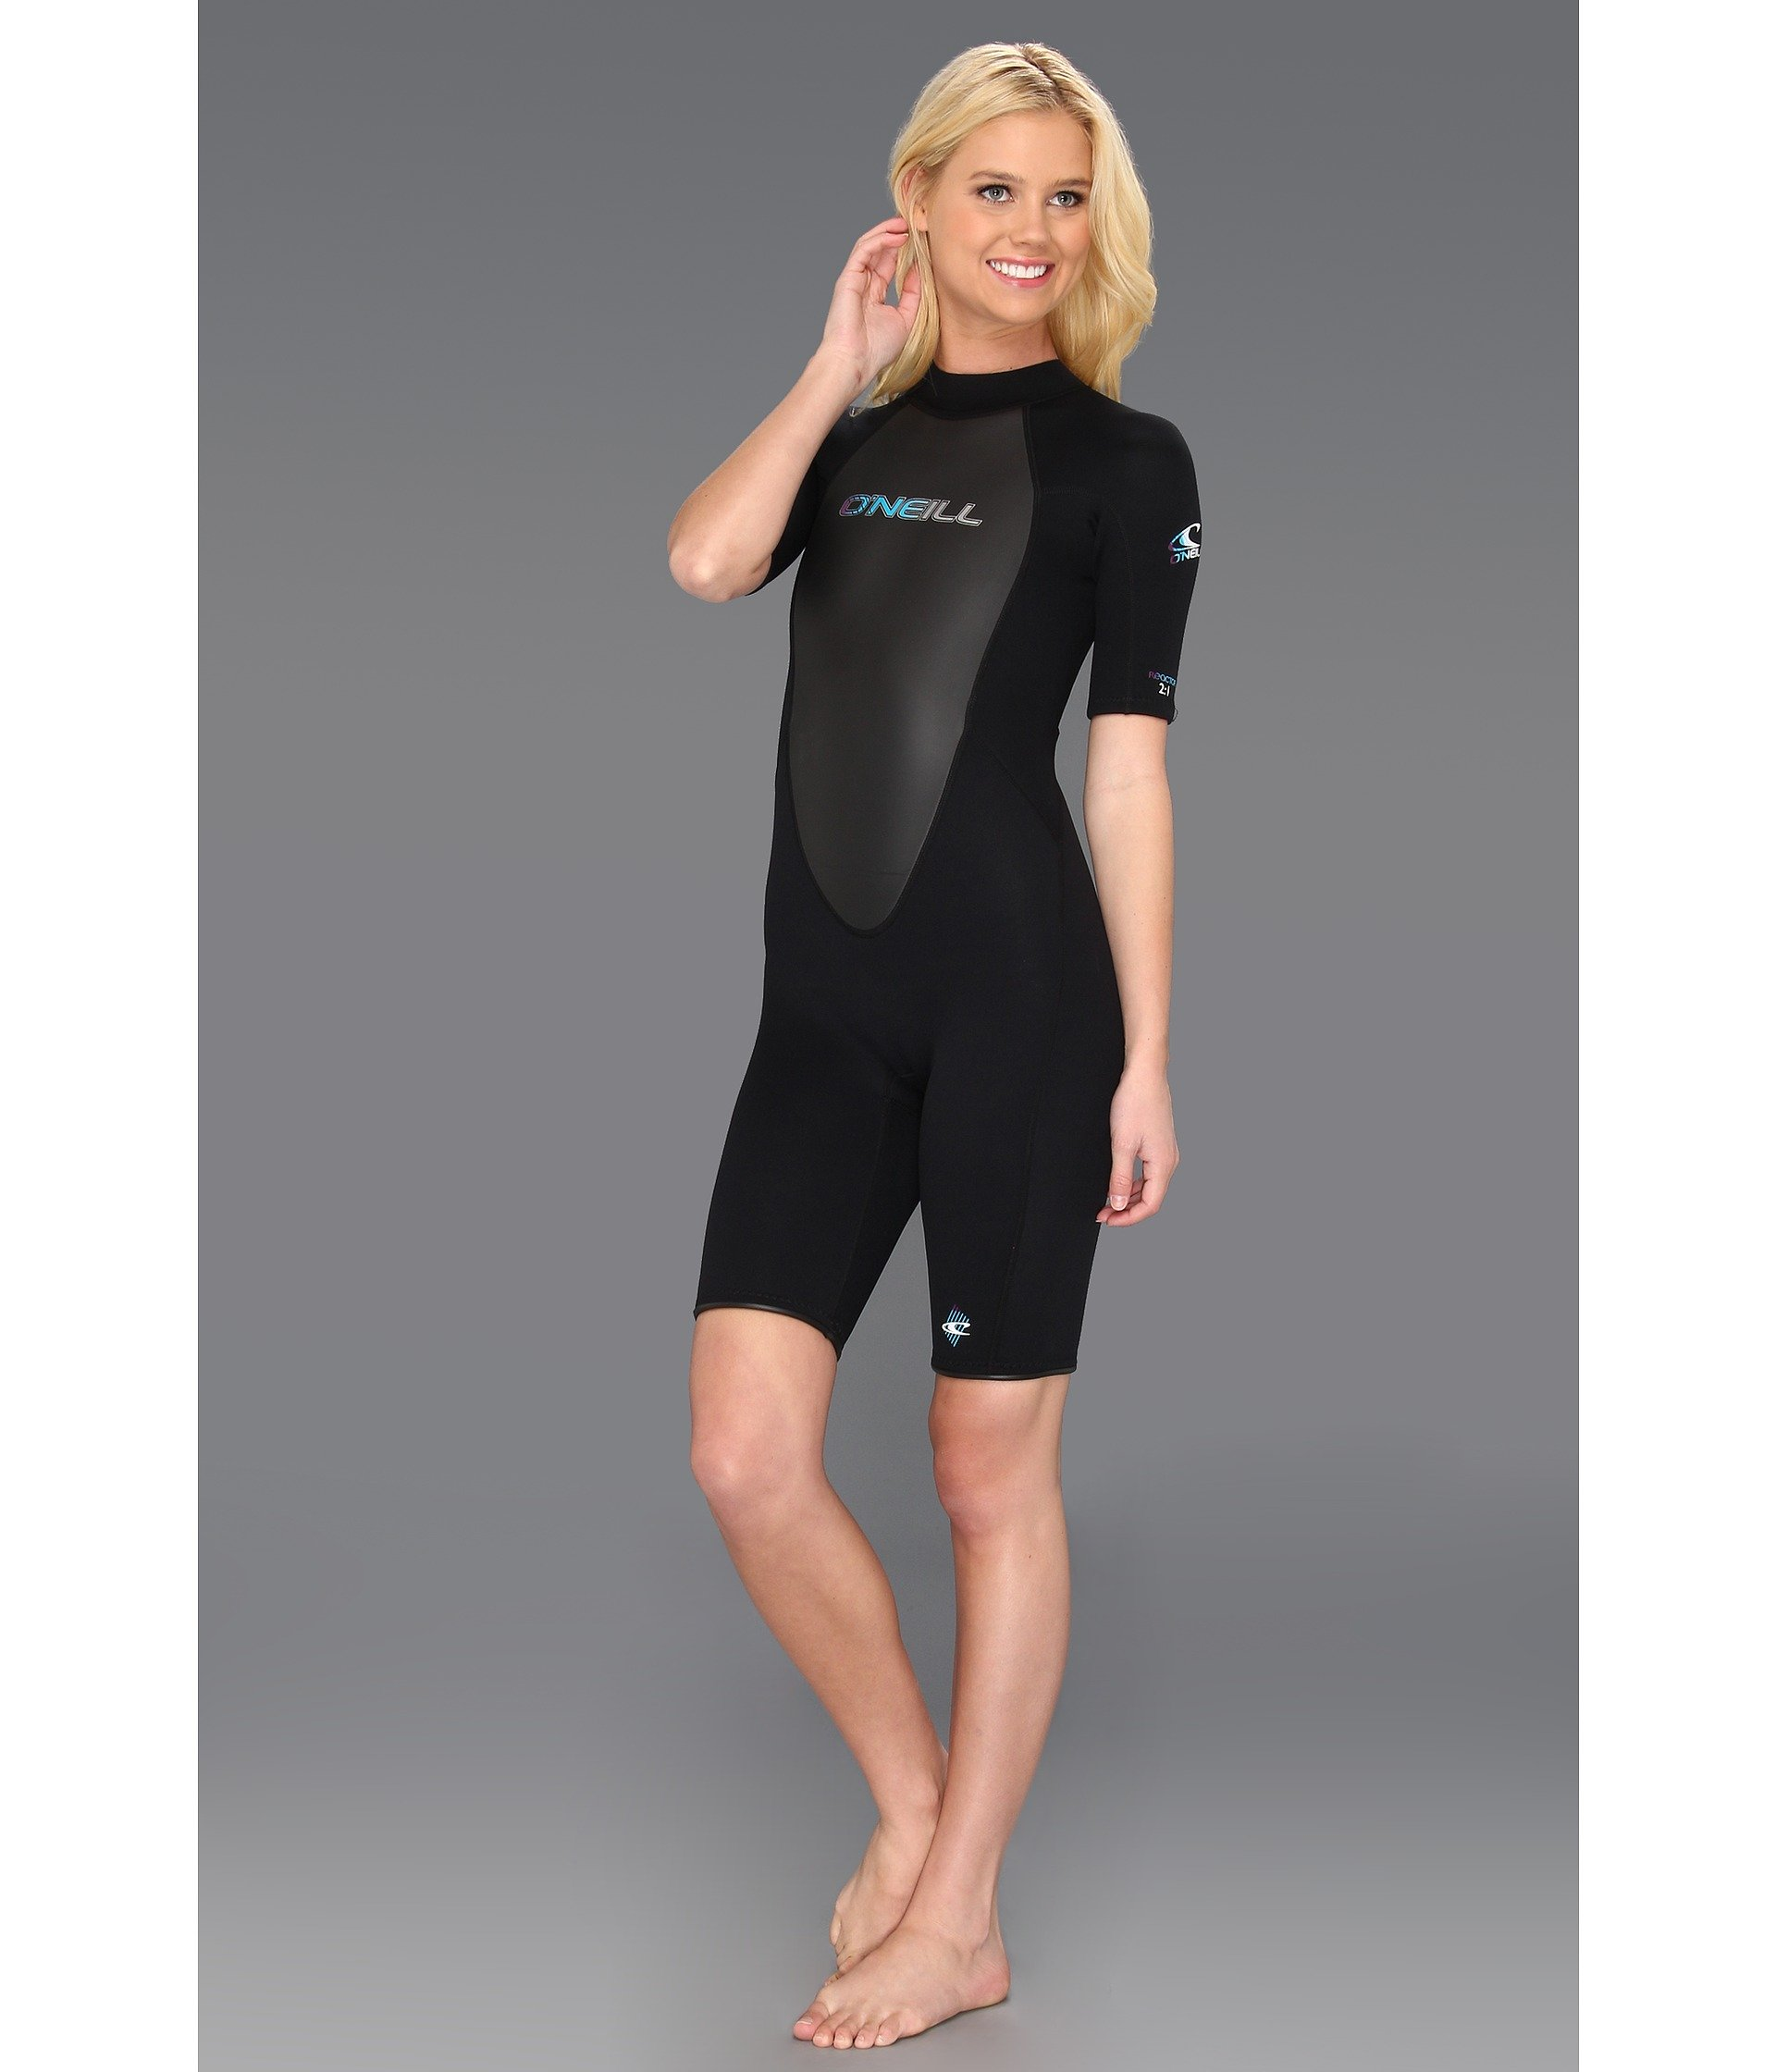 O'Neill Wetsuits Women's Reactor 2mm Short Sleeve Back Zip Spring Wetsuit, Black, 4 by O'Neill Wetsuits